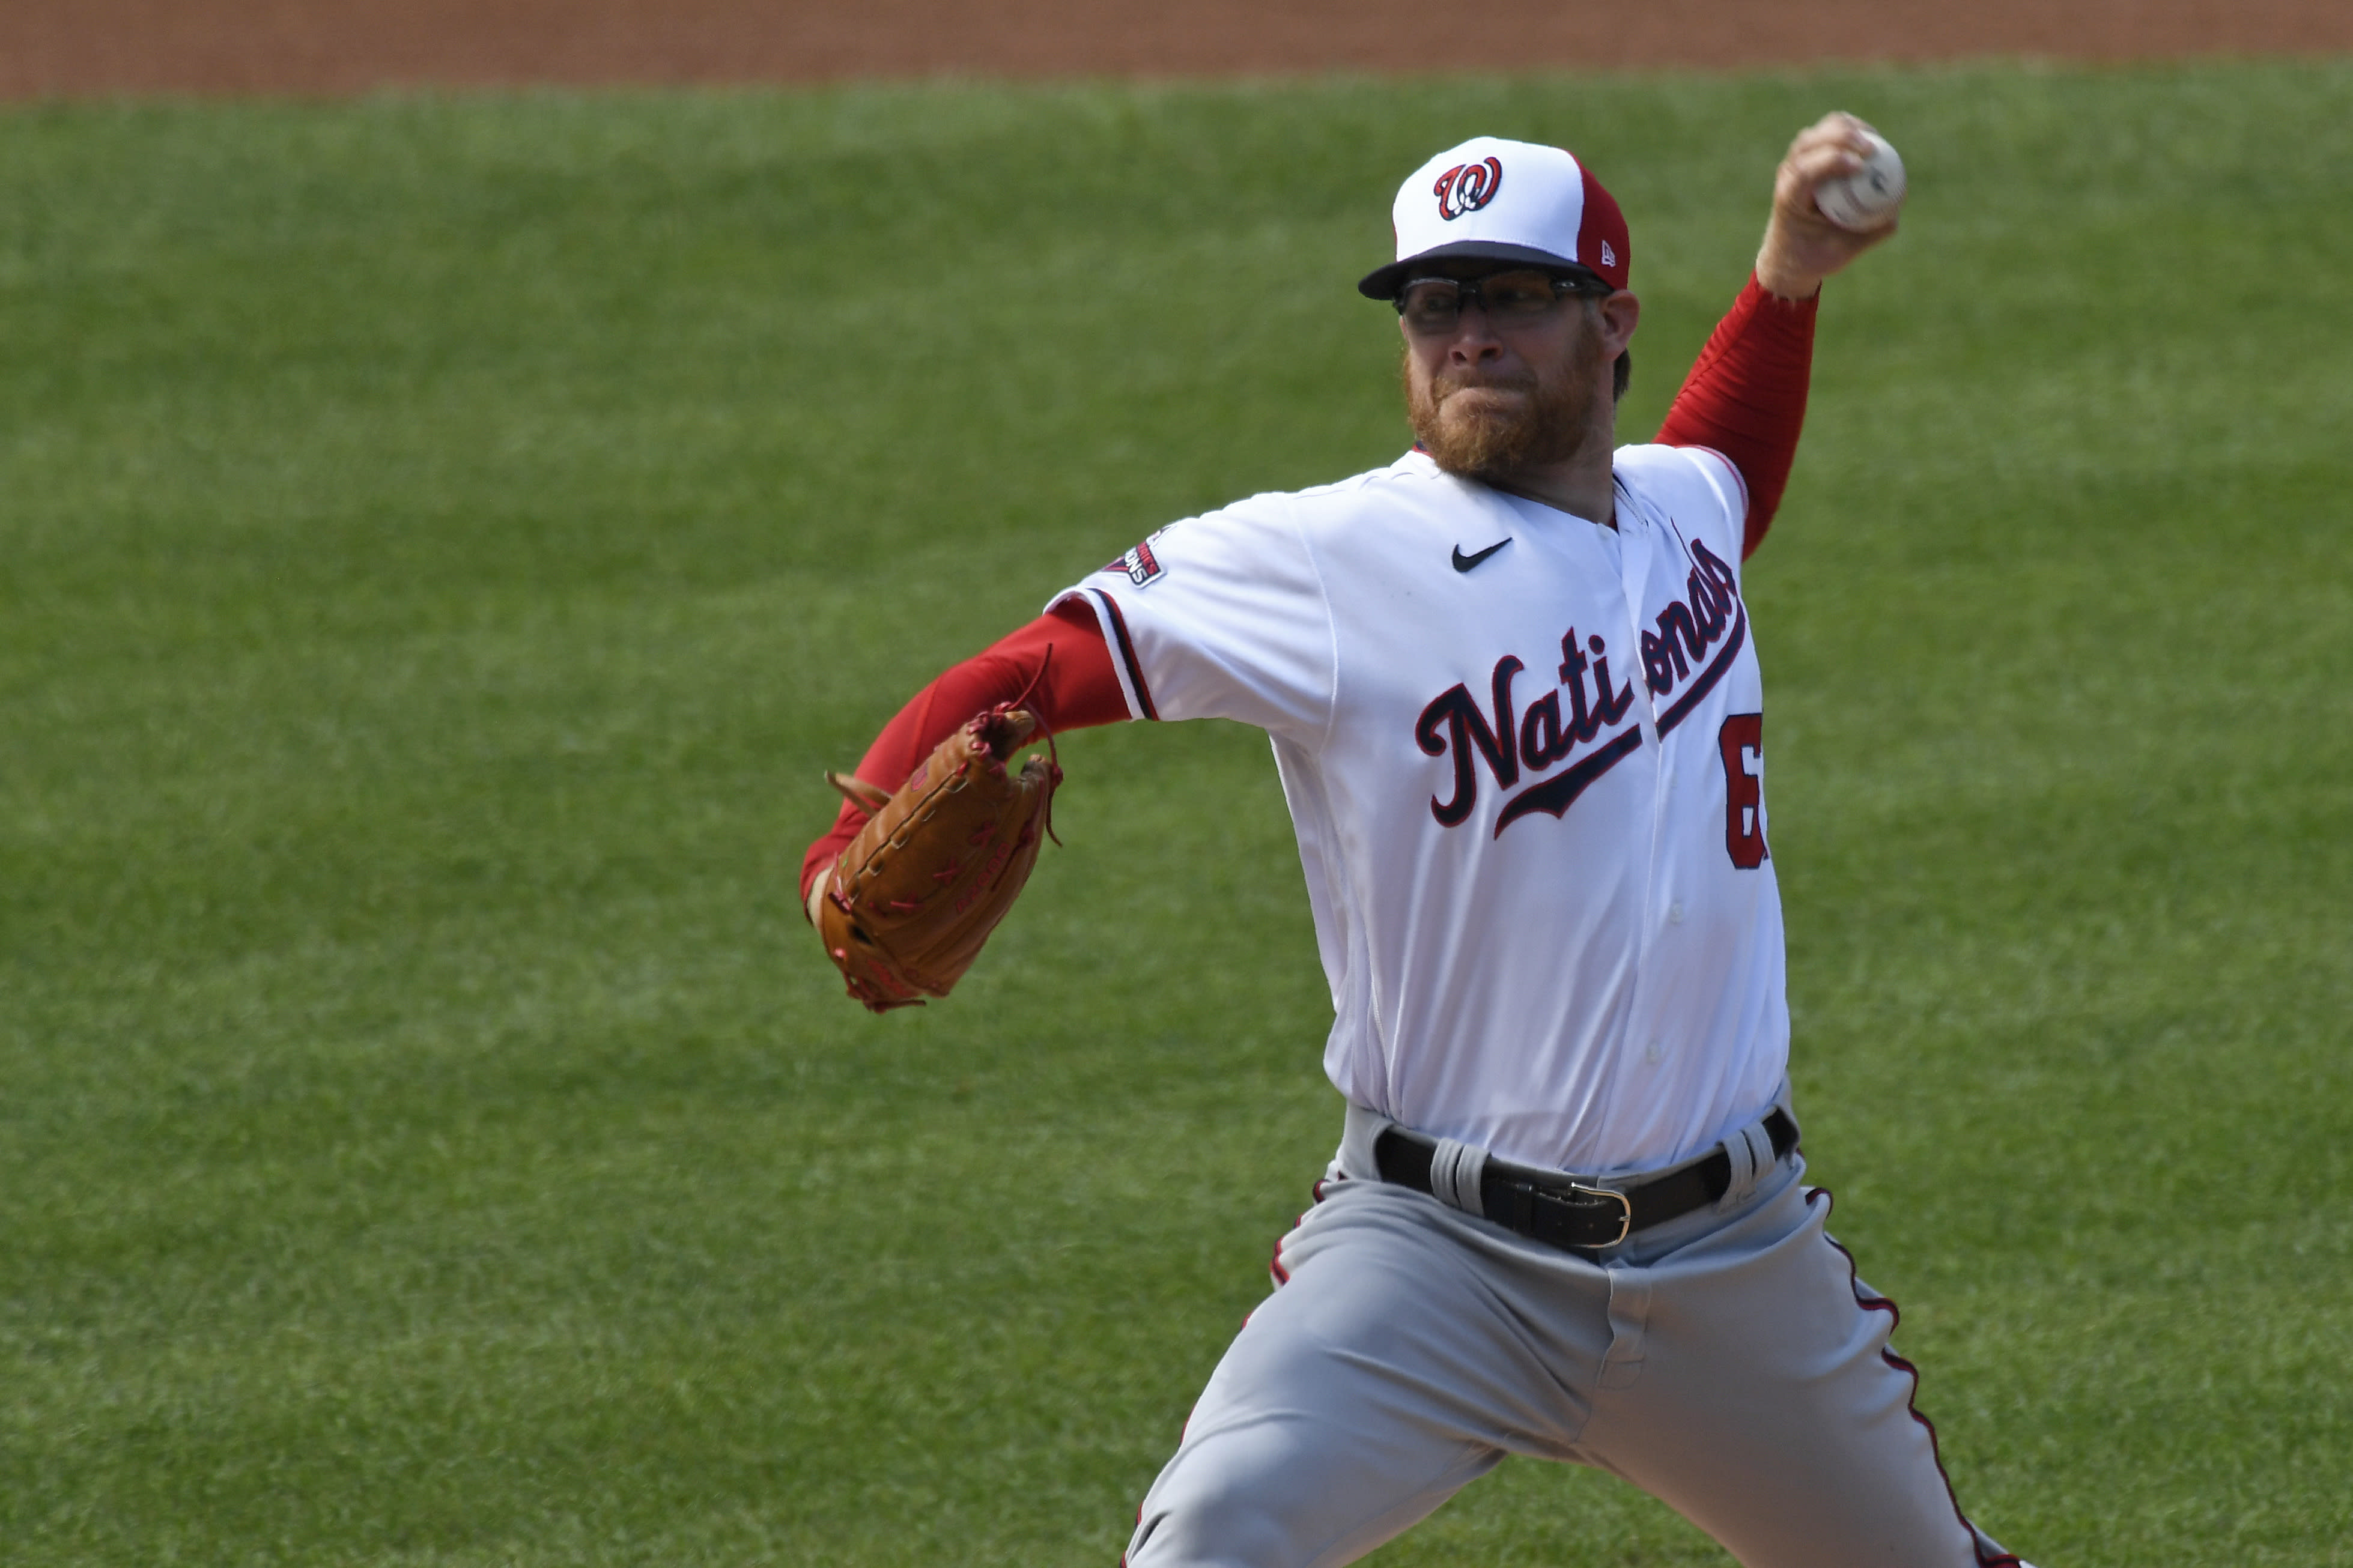 Washington Nationals pitcher Sean Doolittle delivers a pitch during an intersquad baseball game at Nationals Park in Washington, Friday, July 17, 2020. (AP Photo/Susan Walsh)